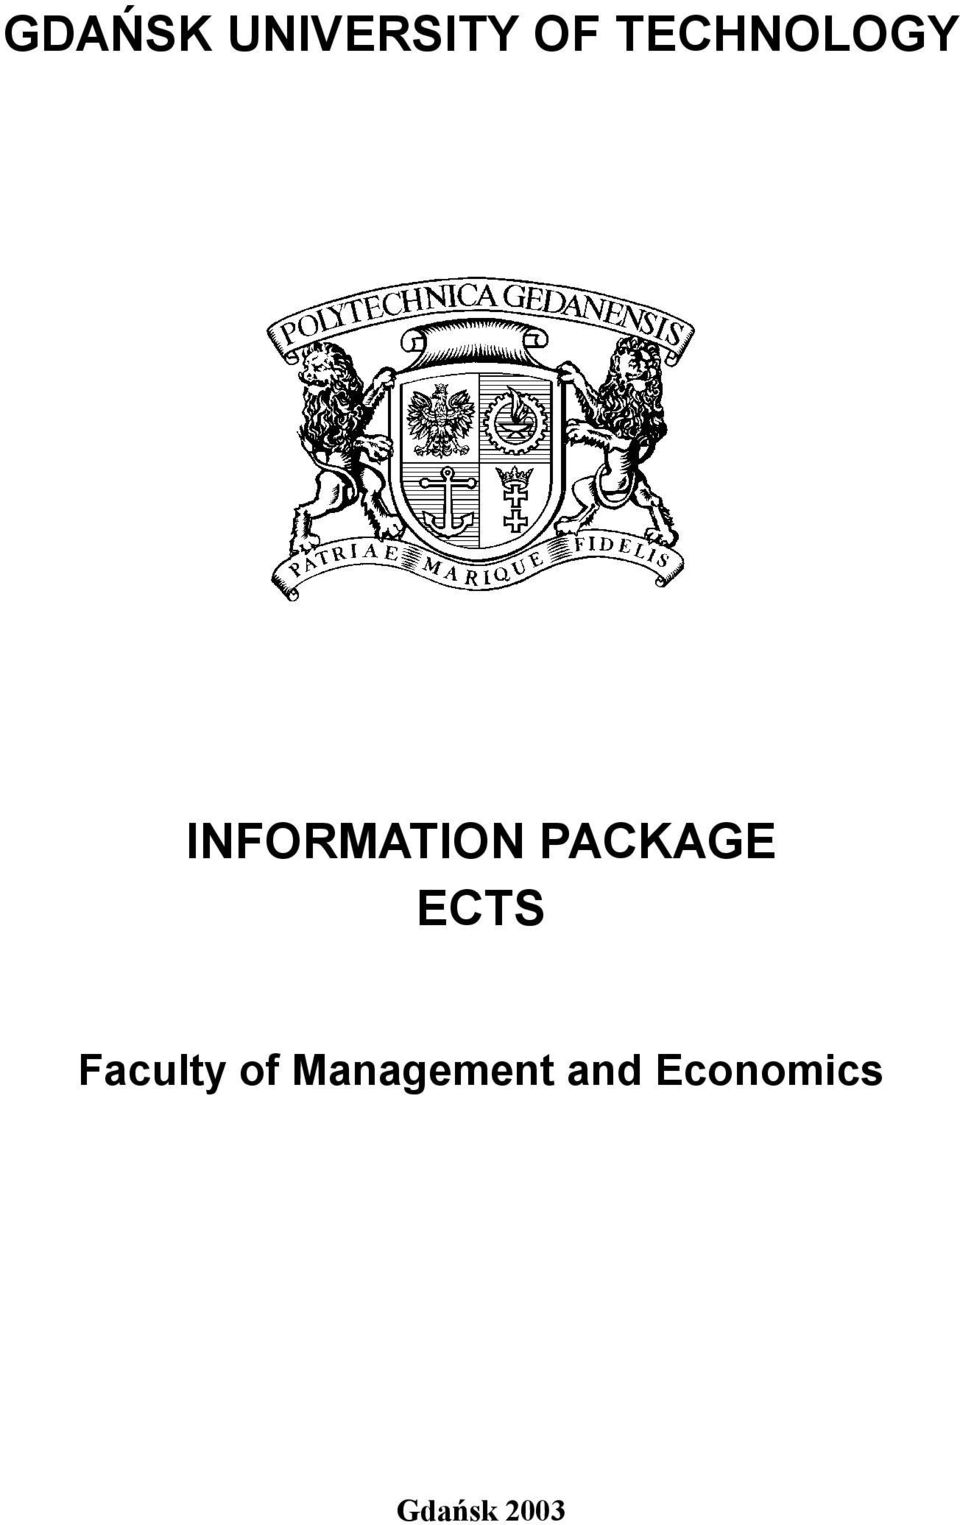 PACKAGE ECTS Faculty of